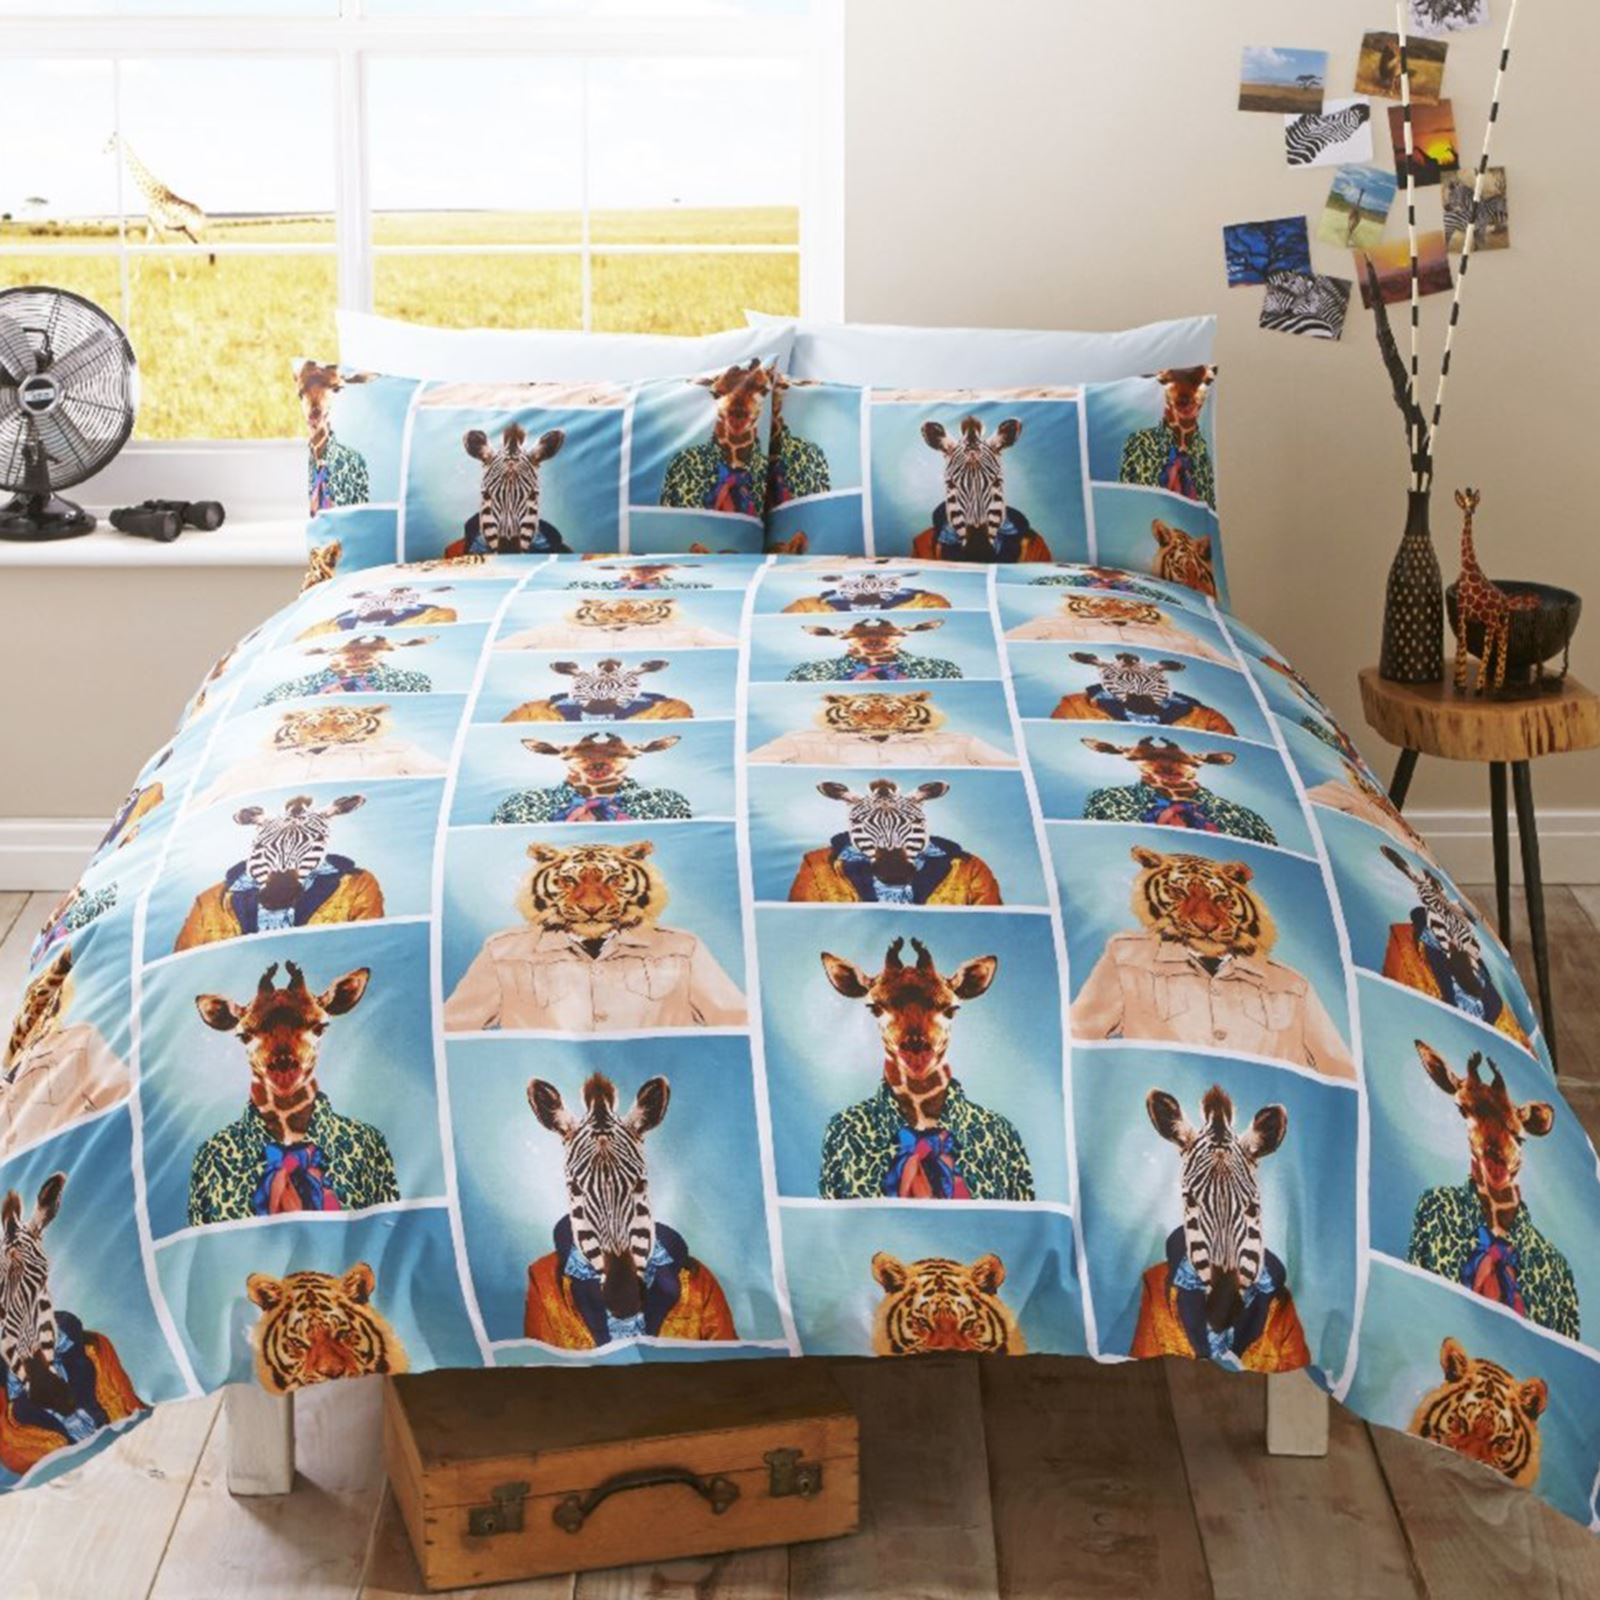 student teenager single  double duvet cover sets boys girls  - studentteenagersingleampdoubleduvetcoversets